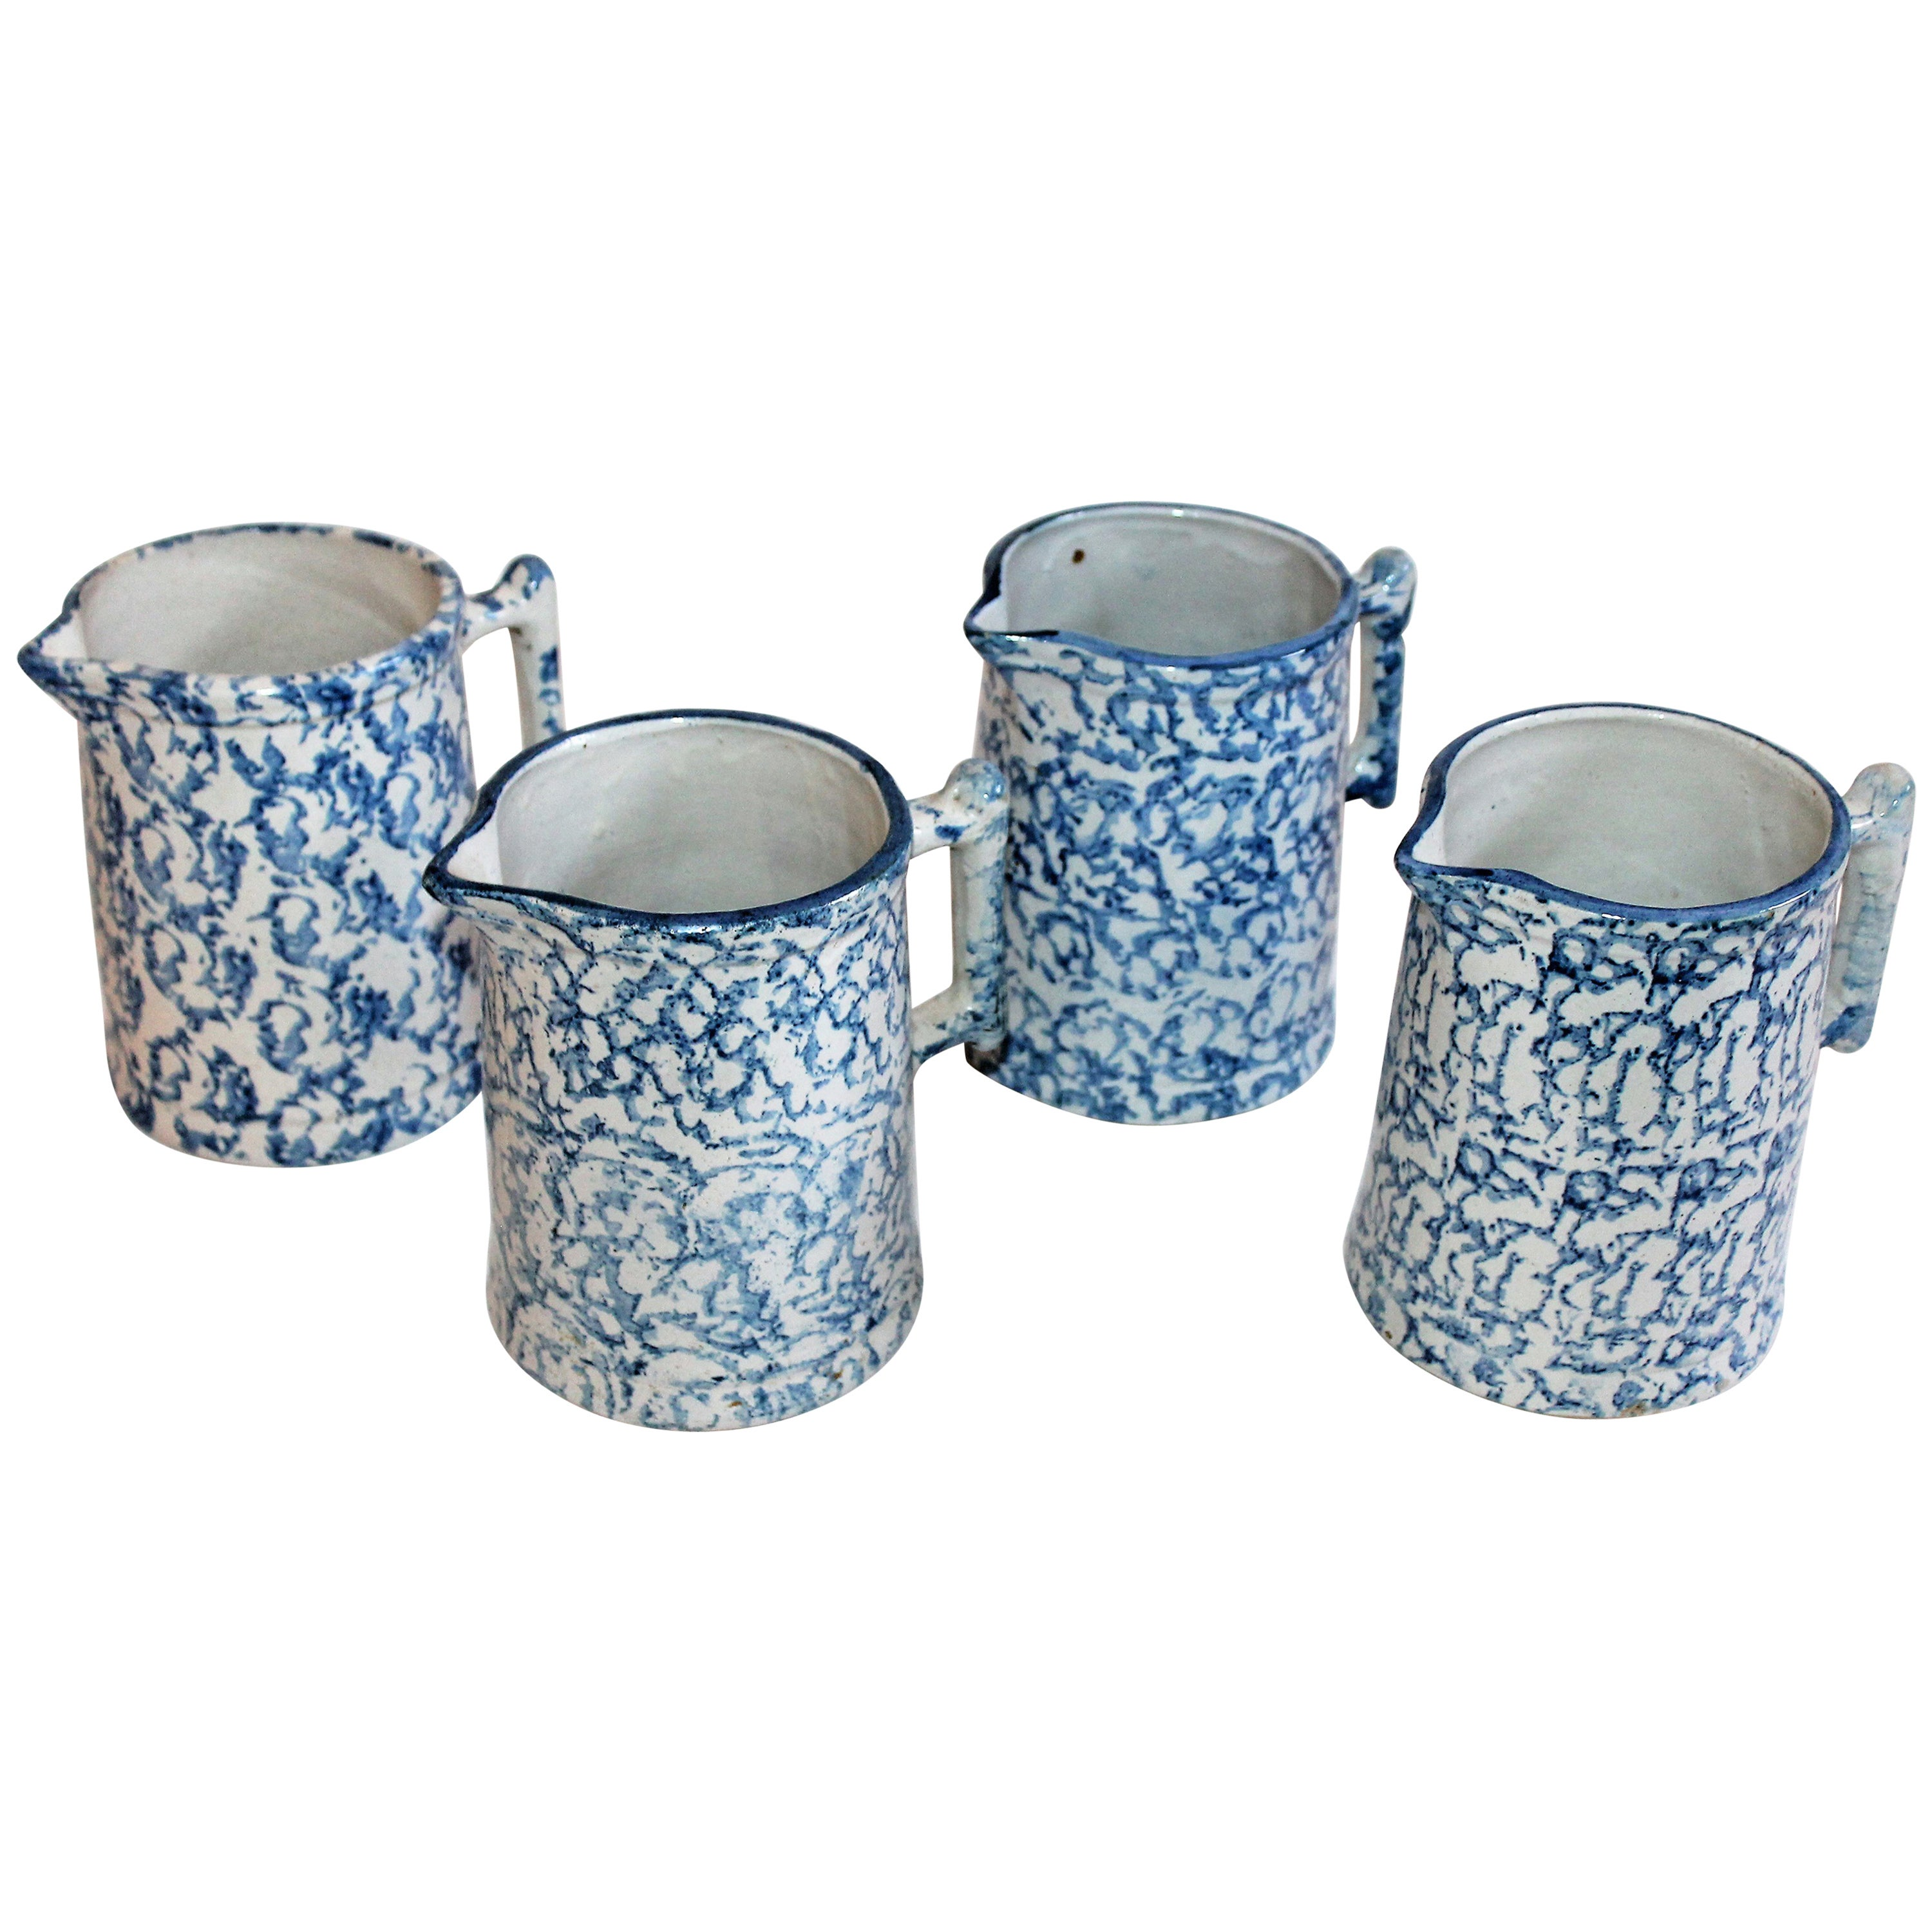 Collection of Four 19th Century Sponge Ware Milk Pitcher